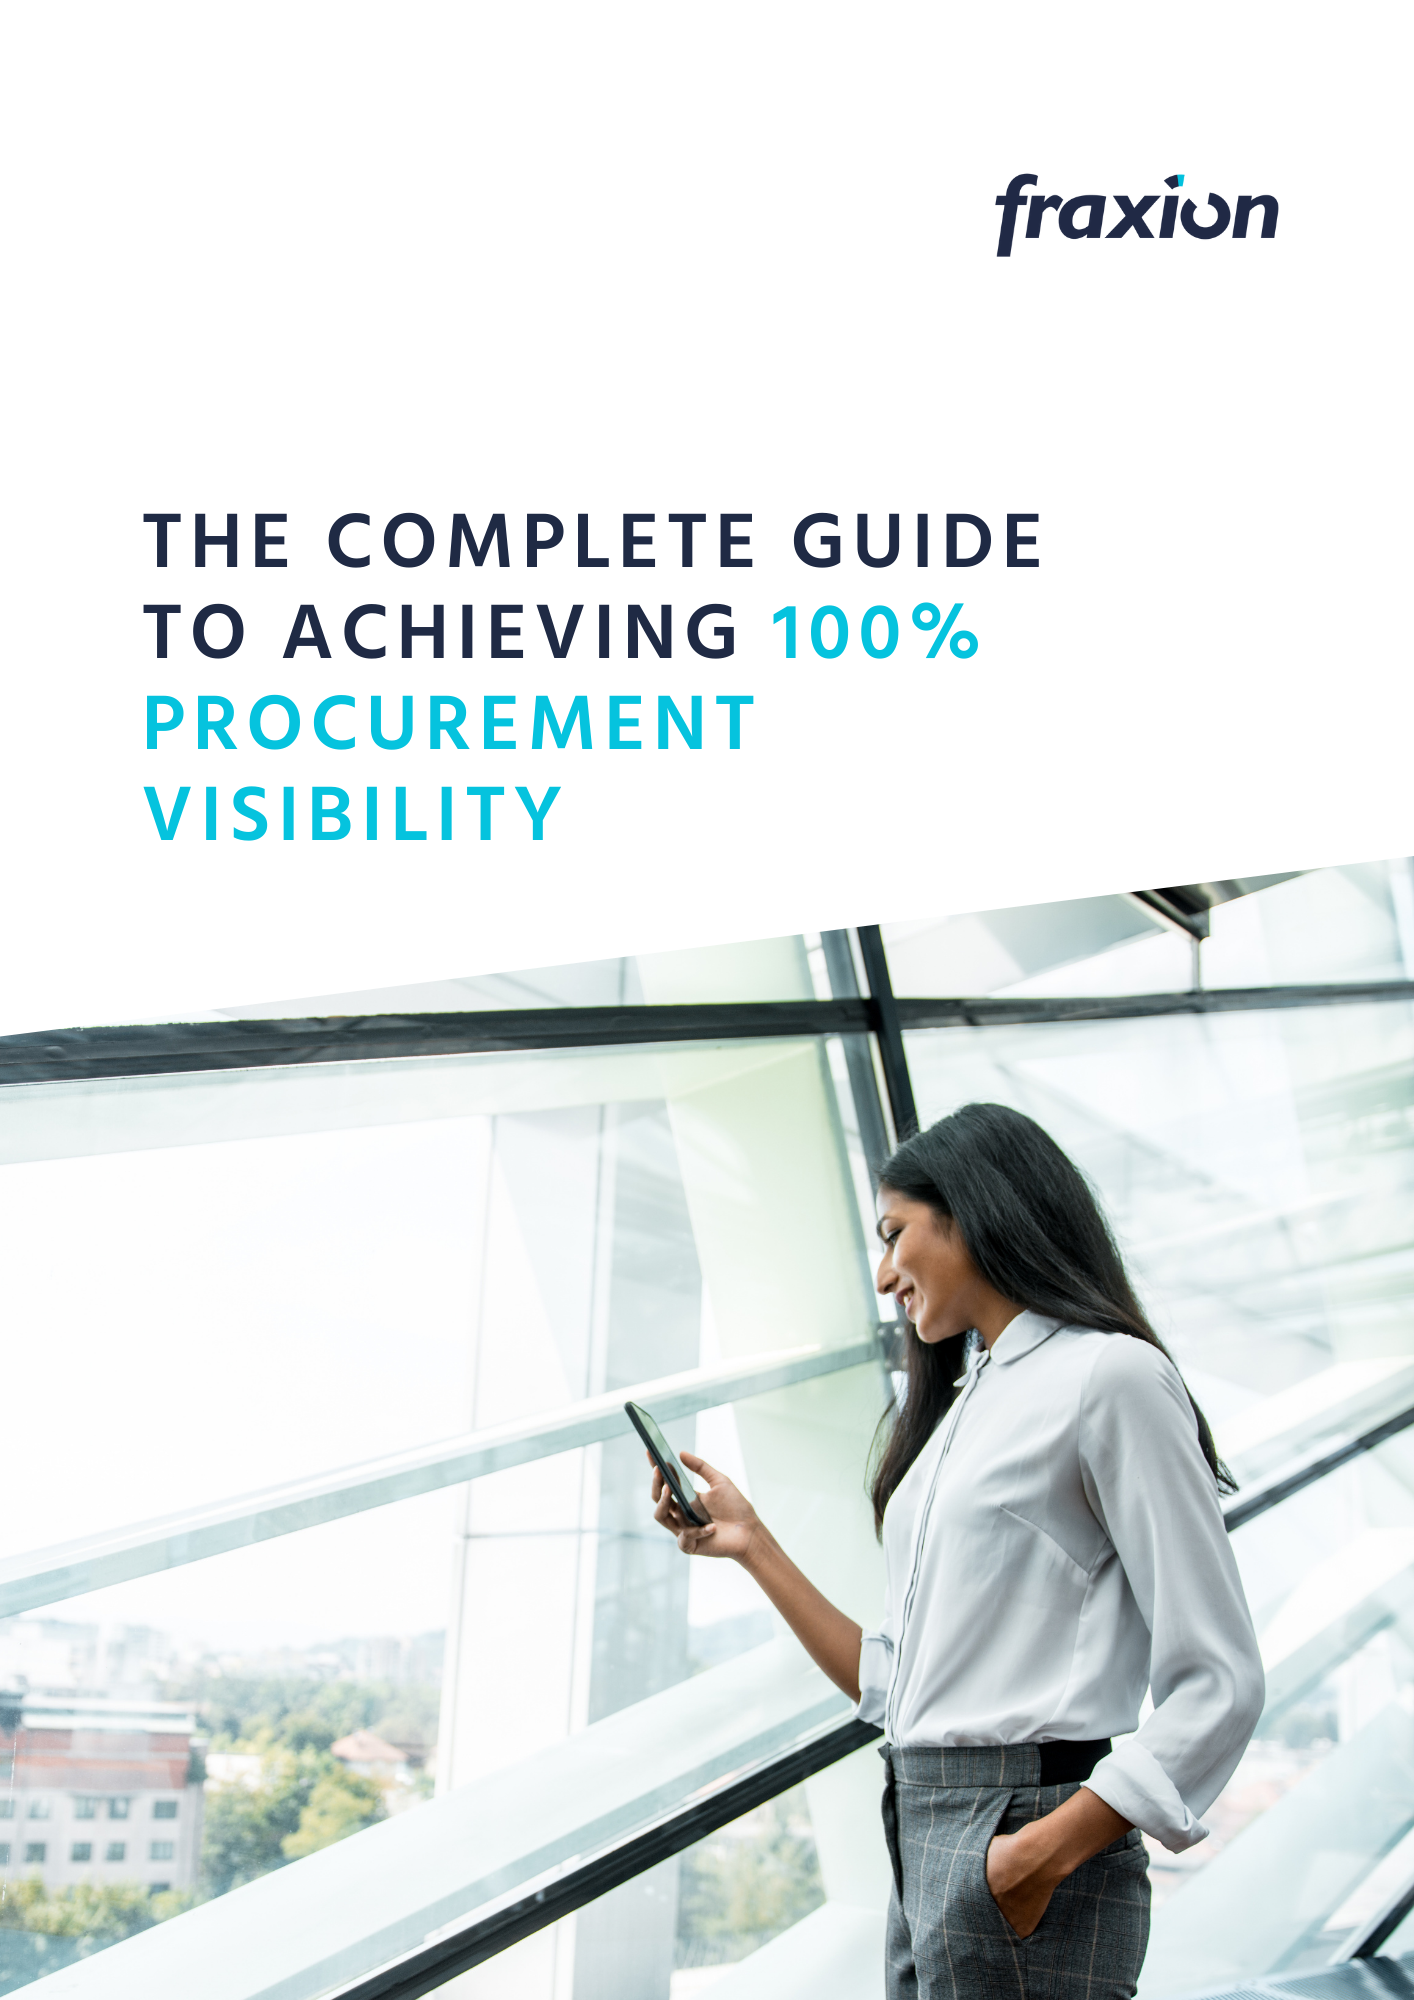 The complete guide to achieving 100% procurement visibility